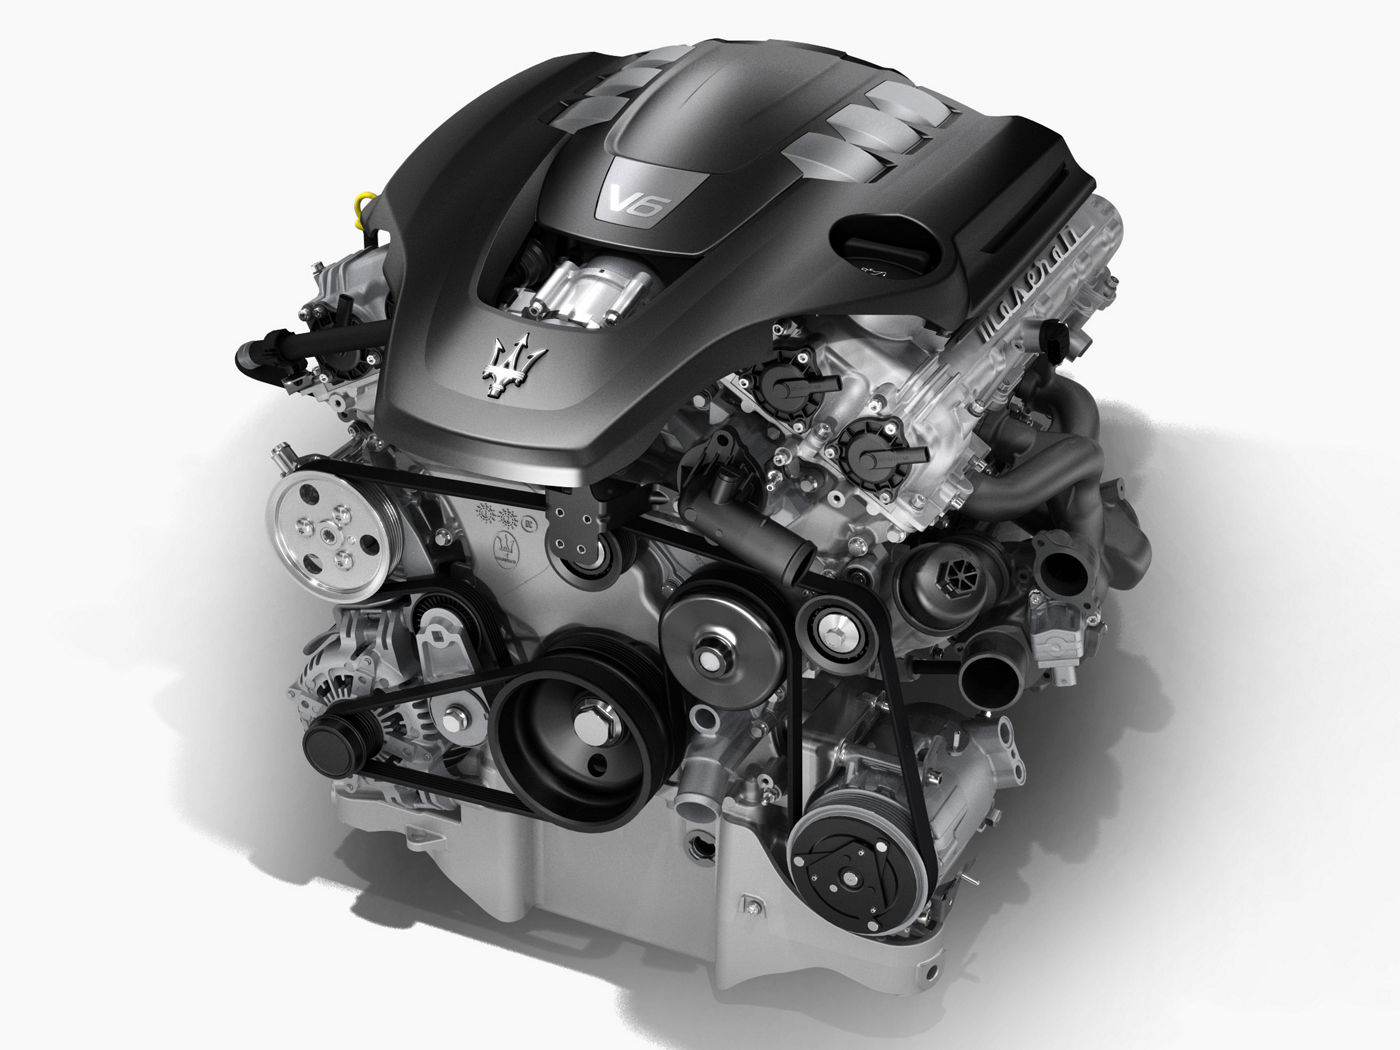 V6 engine for the Maserati Ghibli model: structure and details